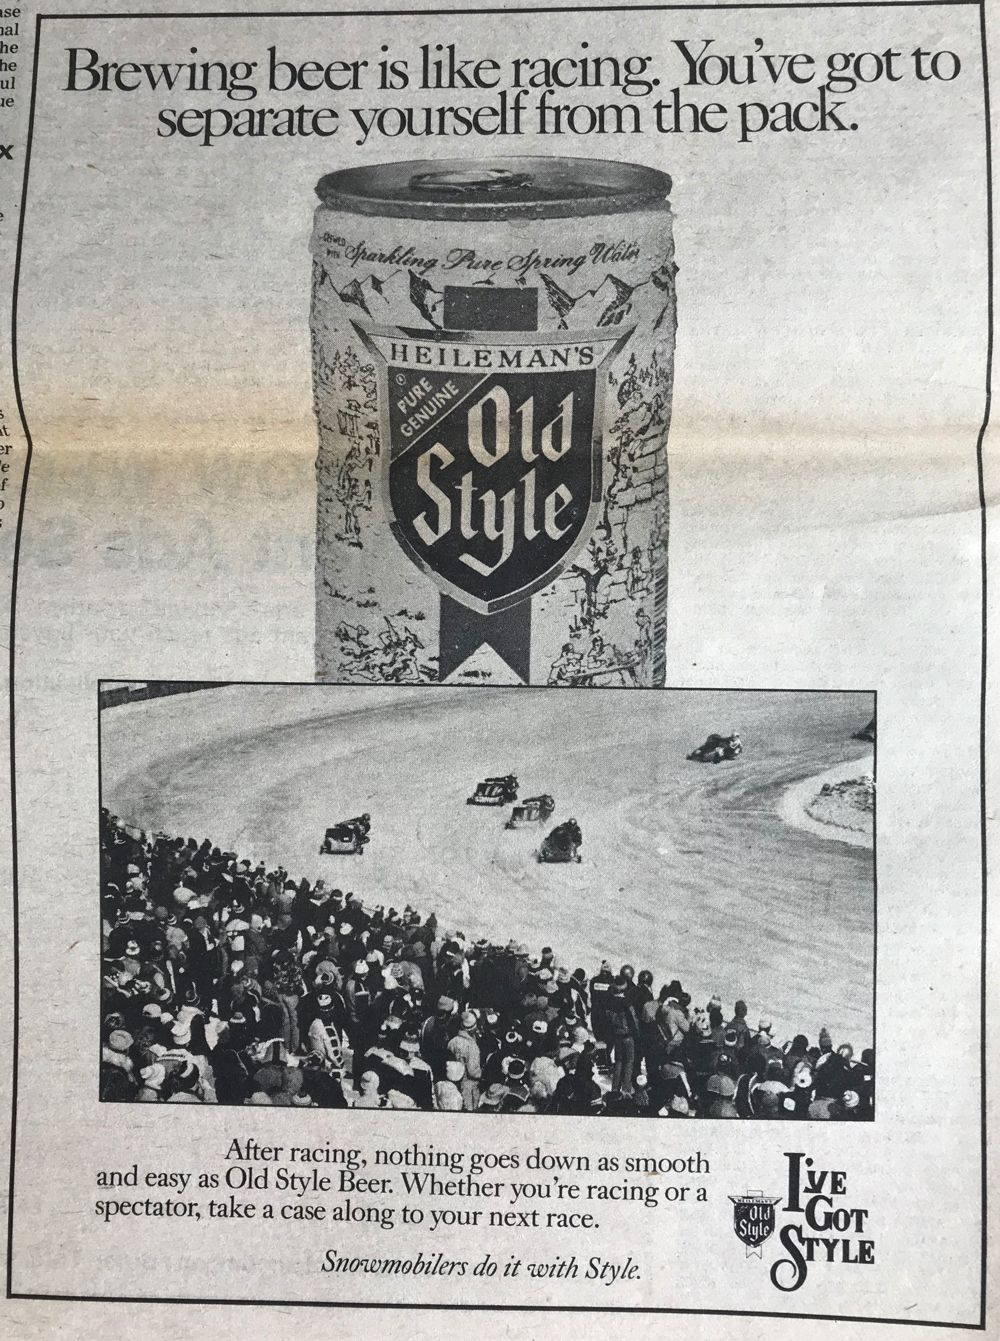 You deserve snowmobile racing and Old Style Beer.